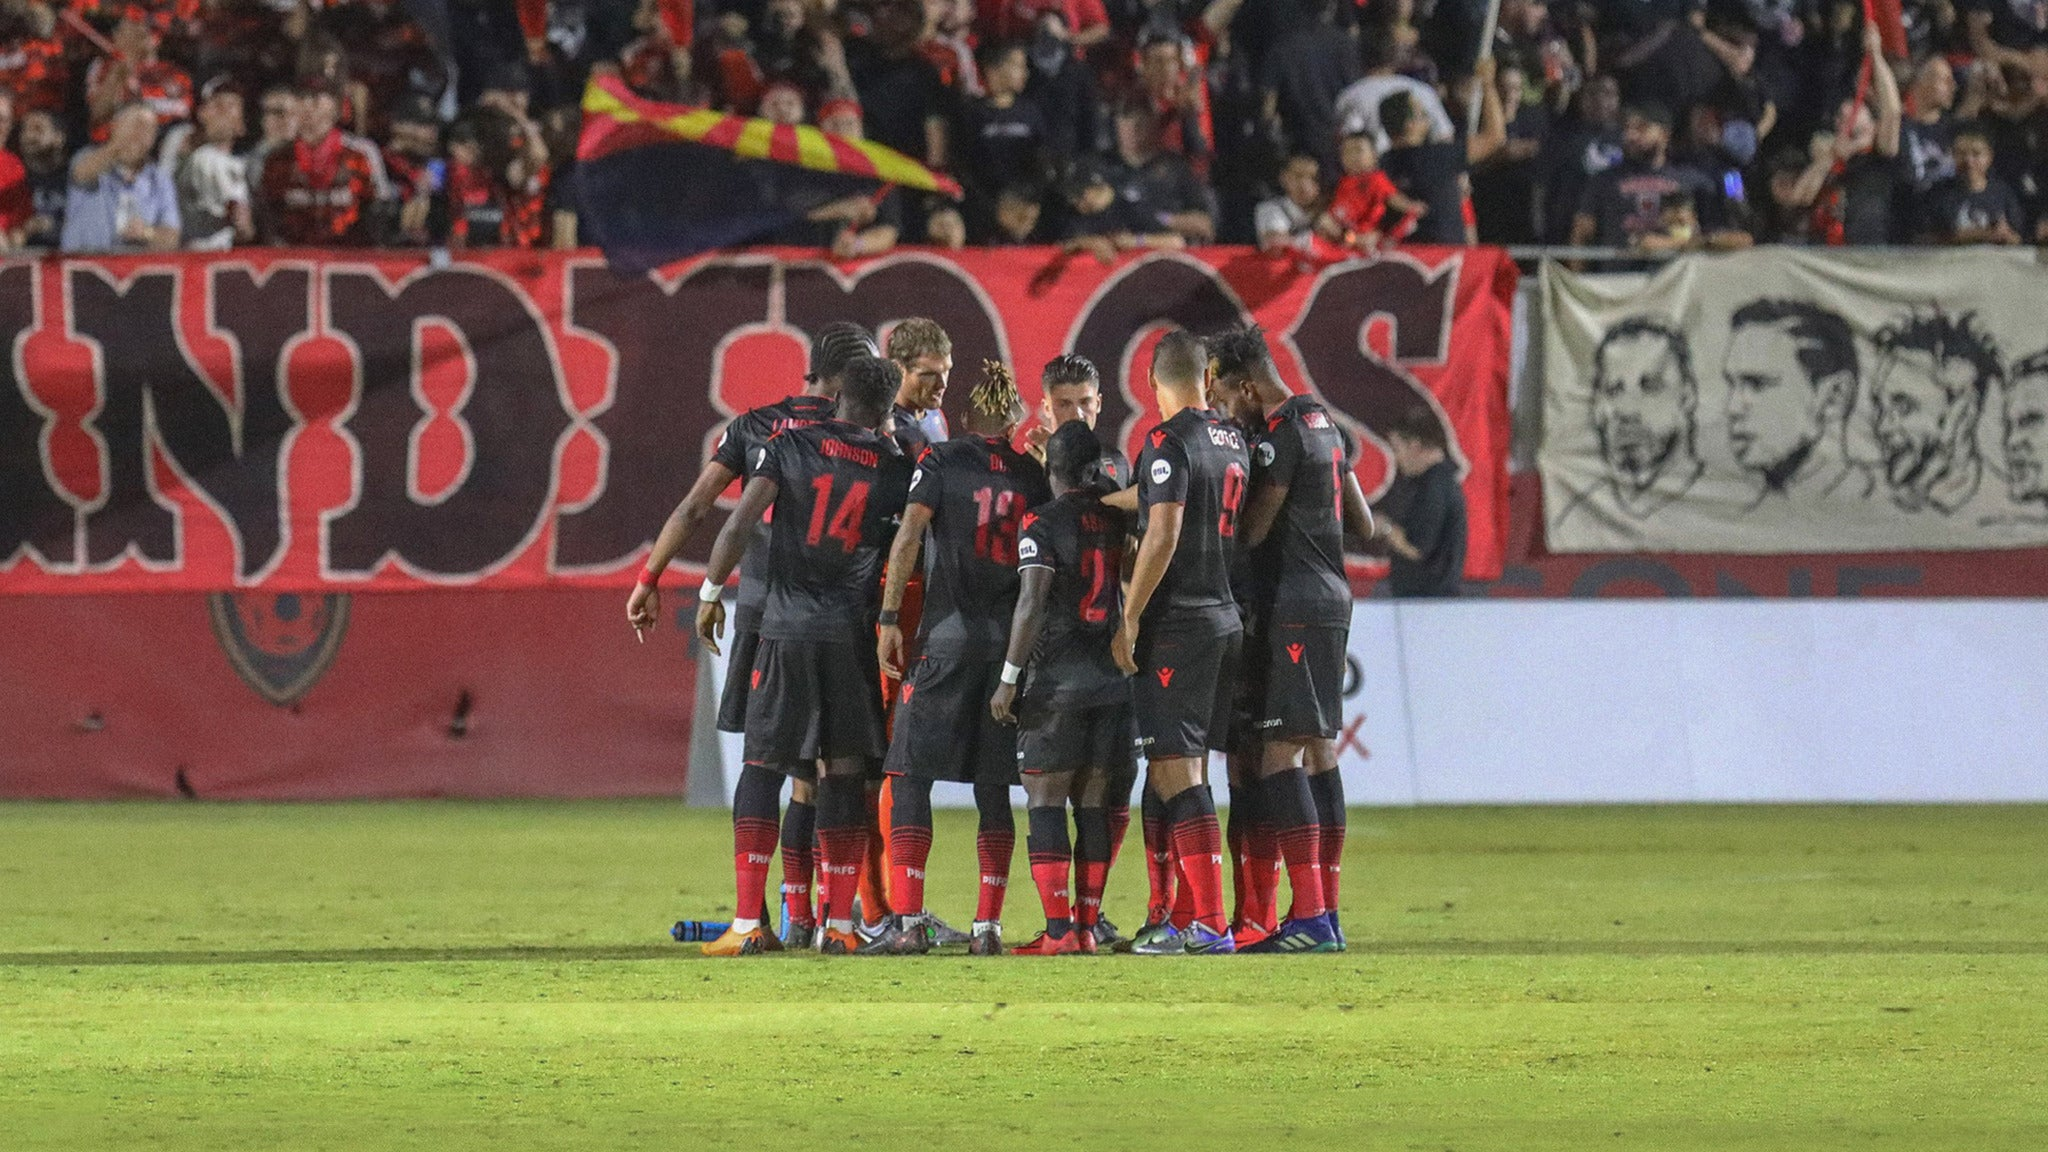 2019 USL Playoffs Round 1 at Casino Arizona Field